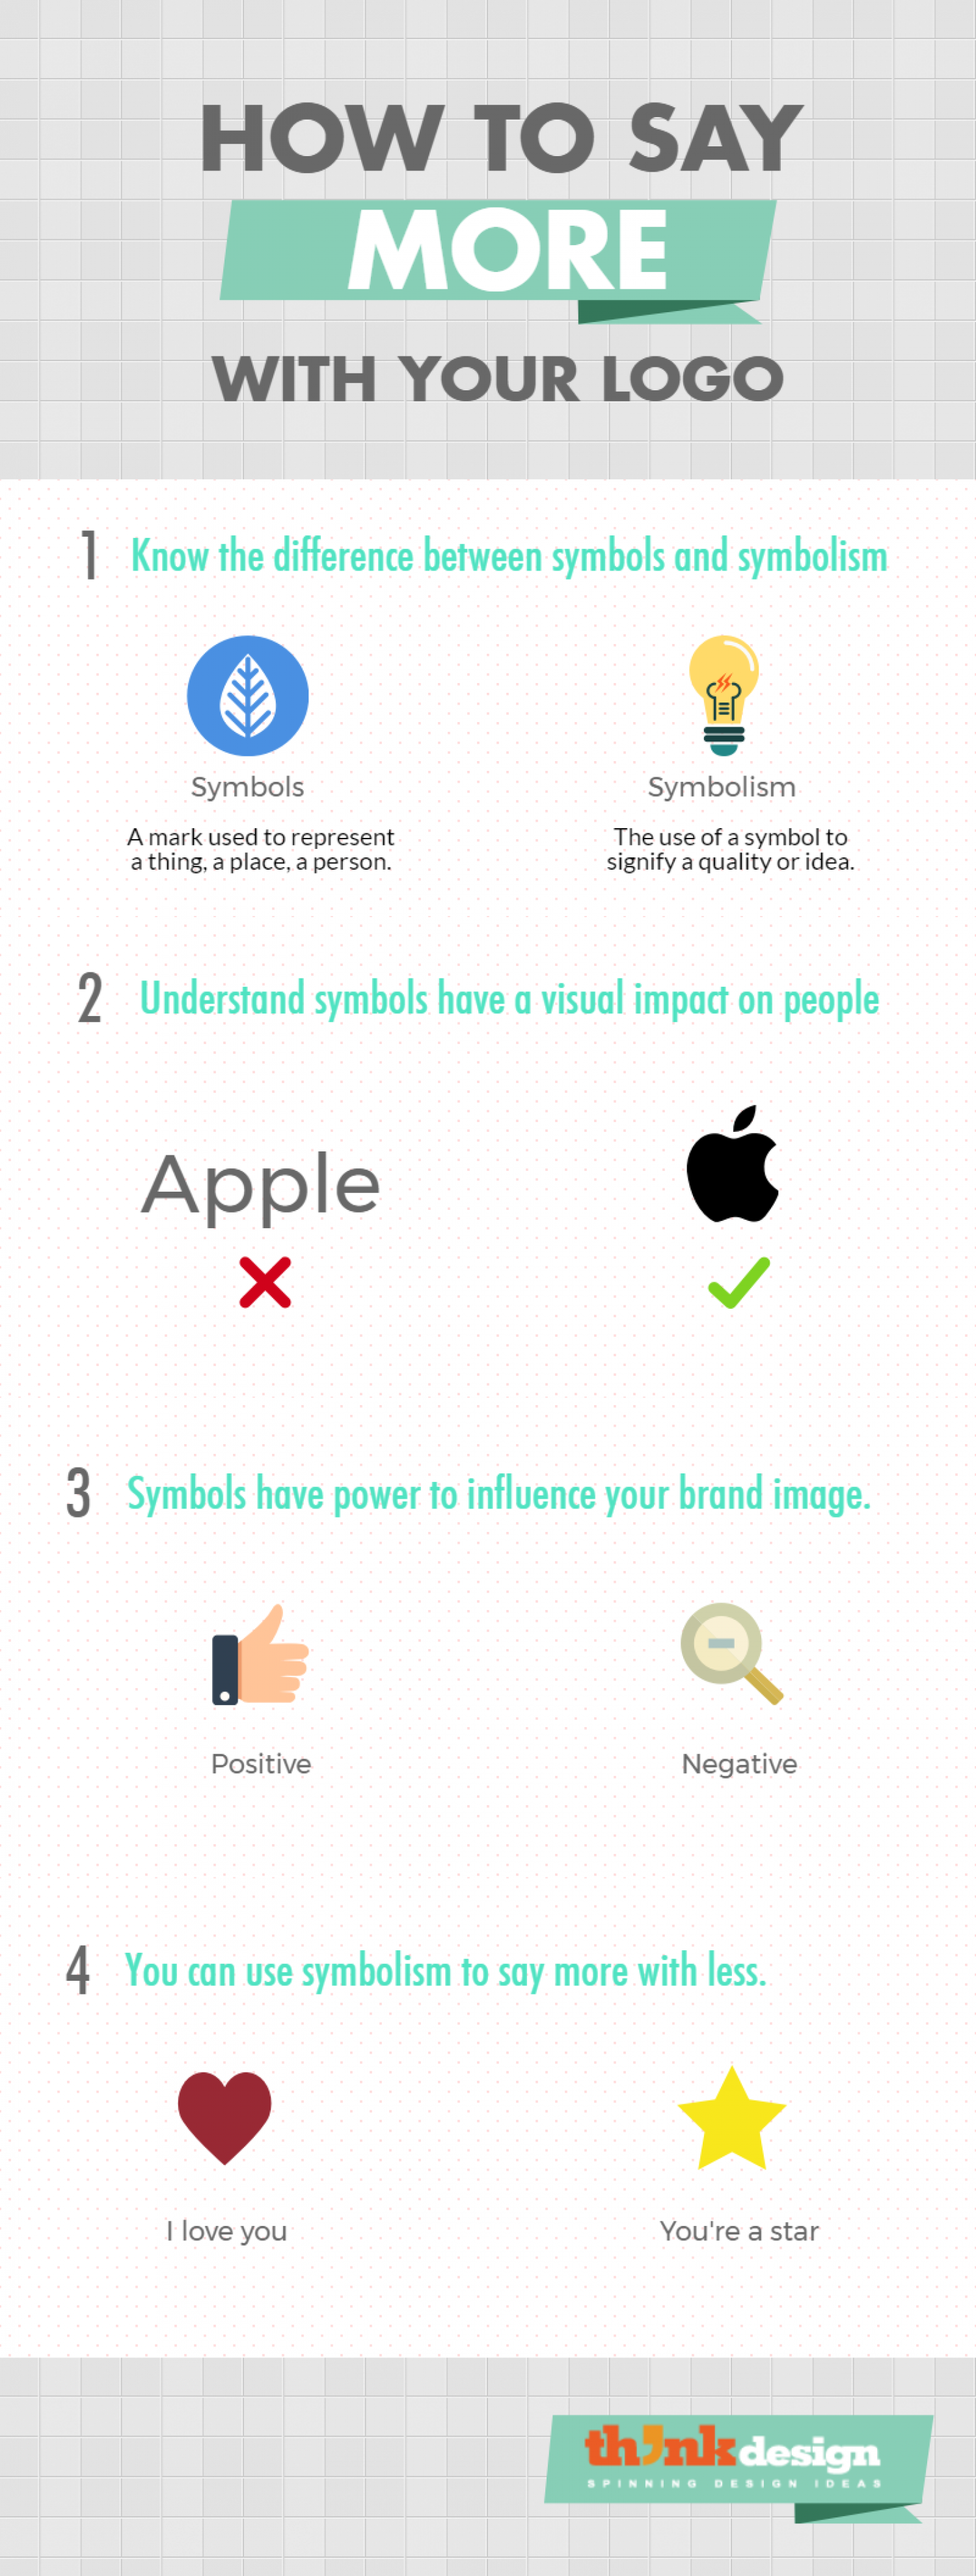 How To Say MORE With Your Logo Infographic